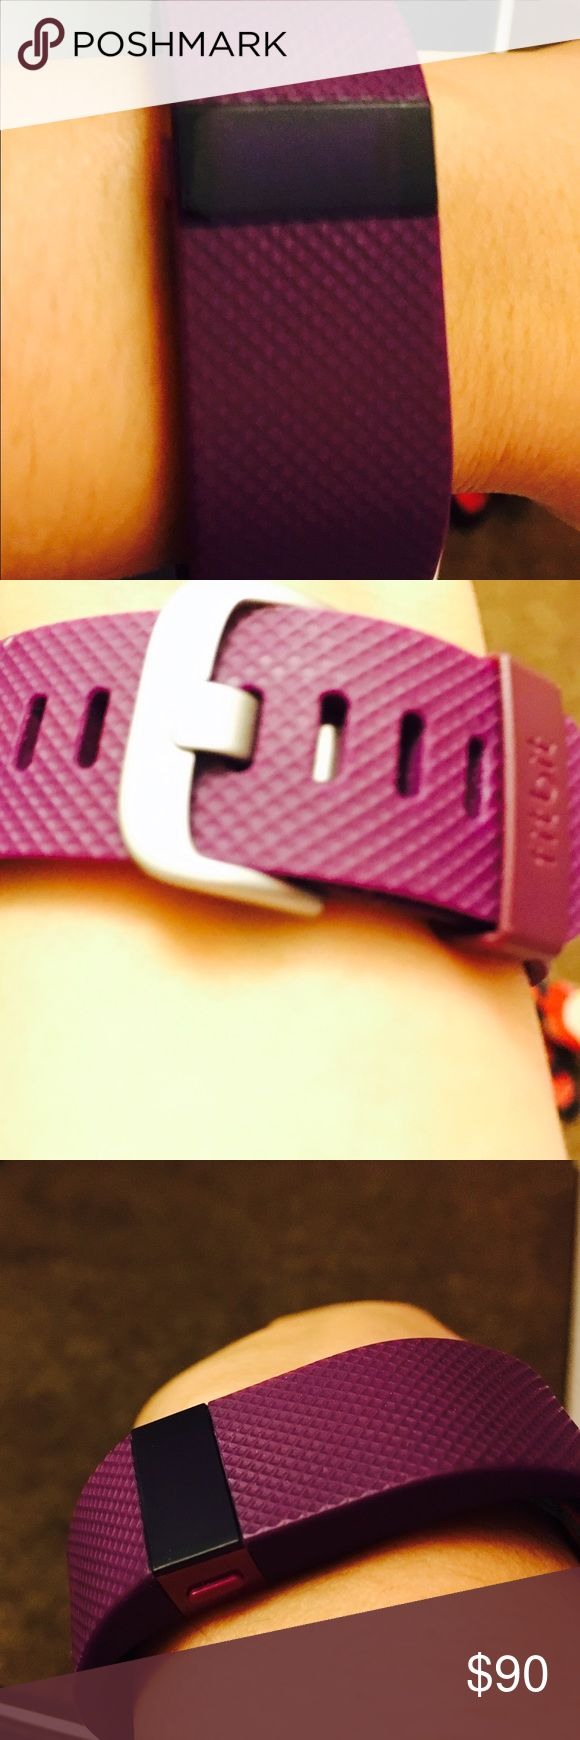 Fitbit Hr Fitbit hr. Brand new condition, purple color. Size small. With charging wire. fitbit Other